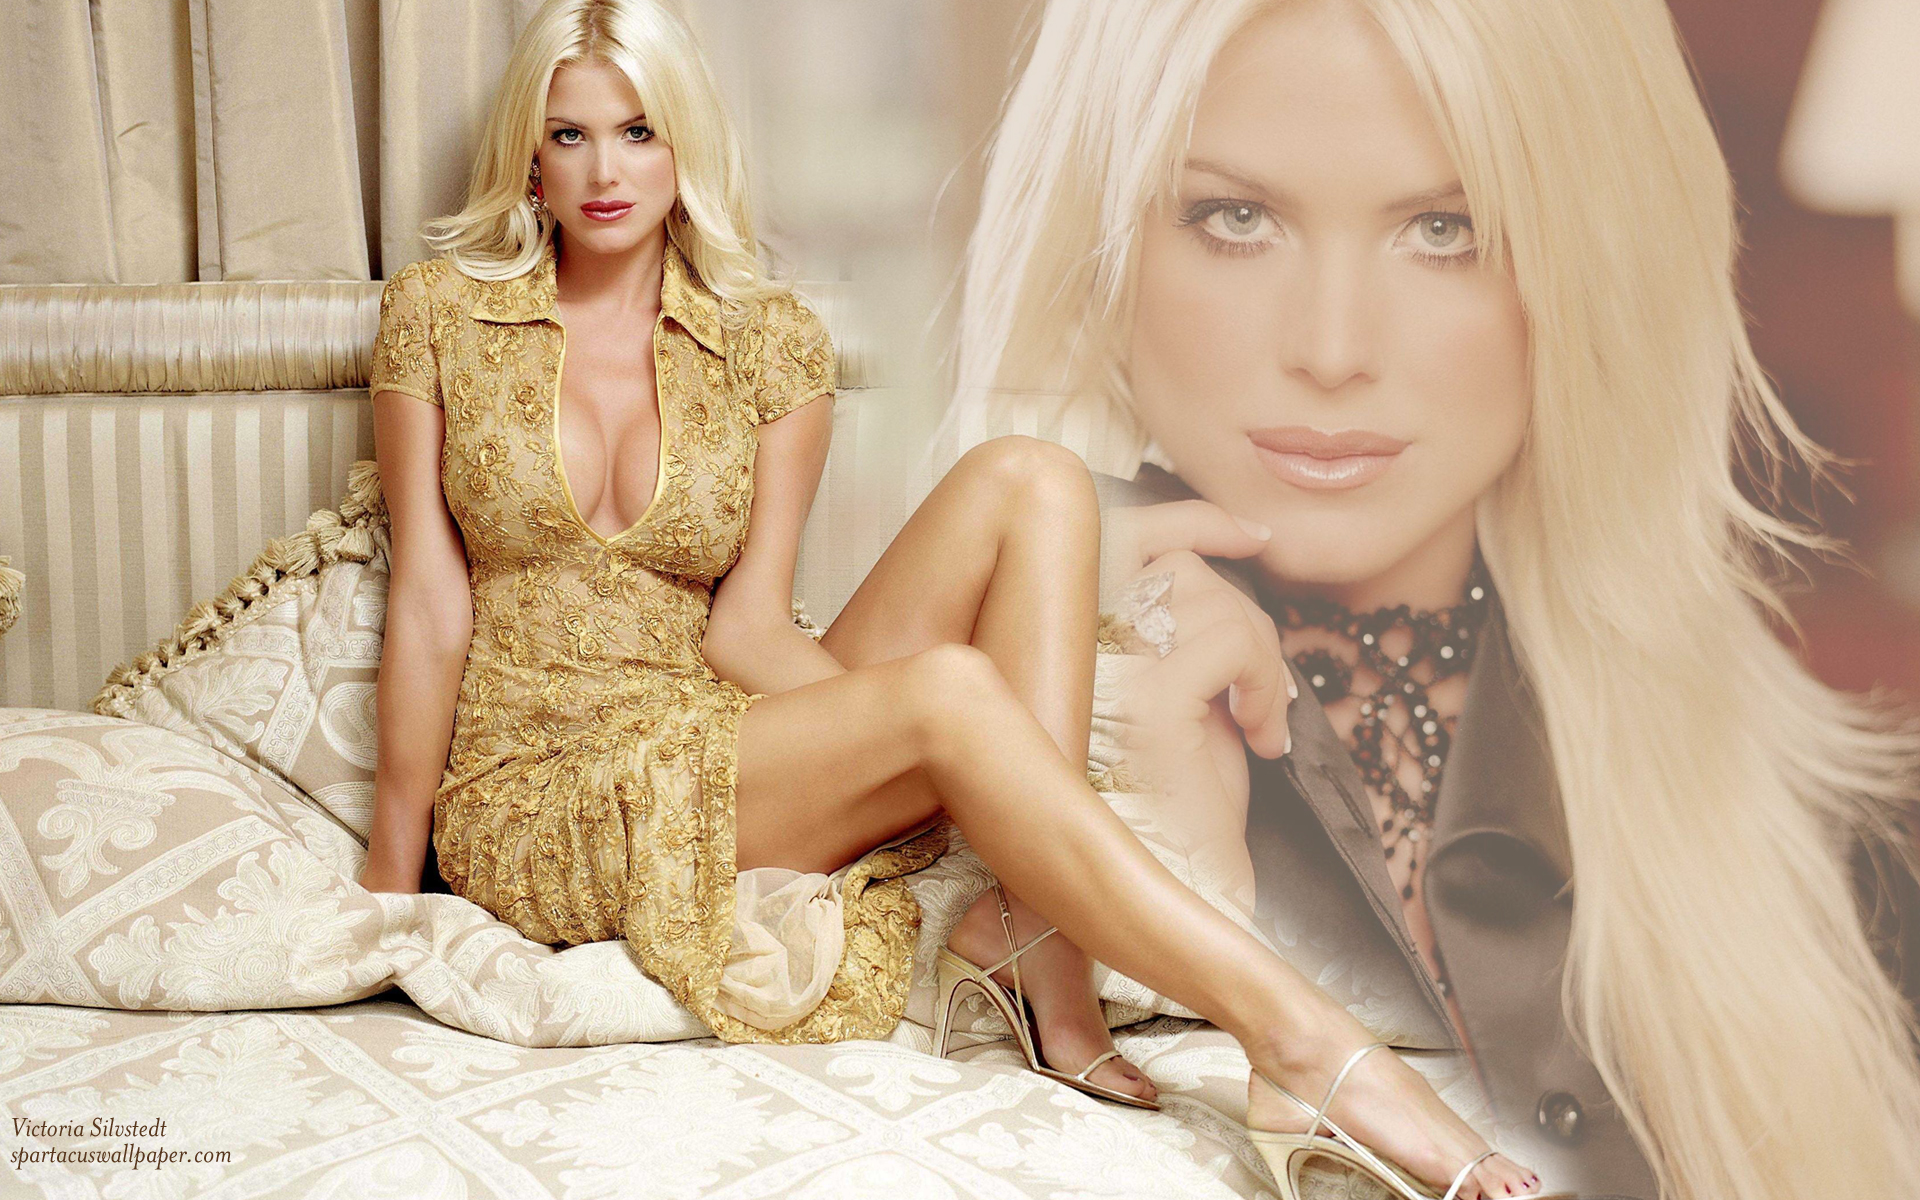 Victoria Silvstedt Desktop Backgrounds Mobile Home Screens 1920x1200